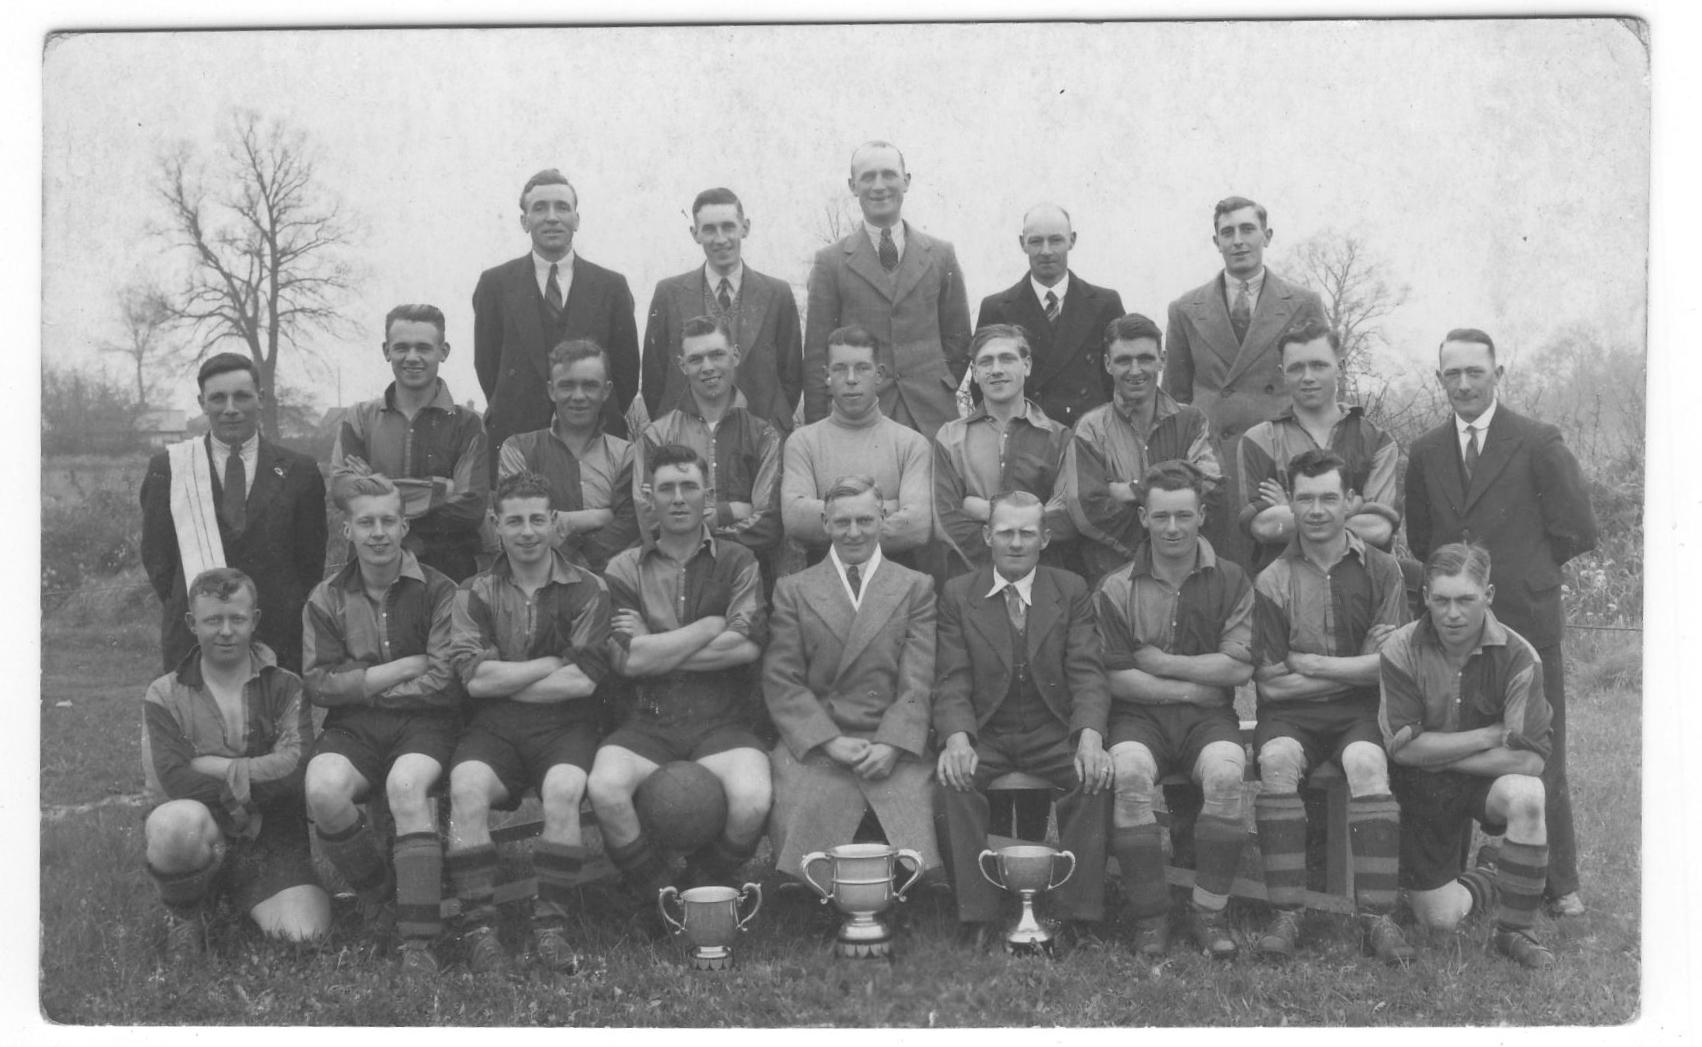 Wivenhoe footballers after a successful season. When? who?